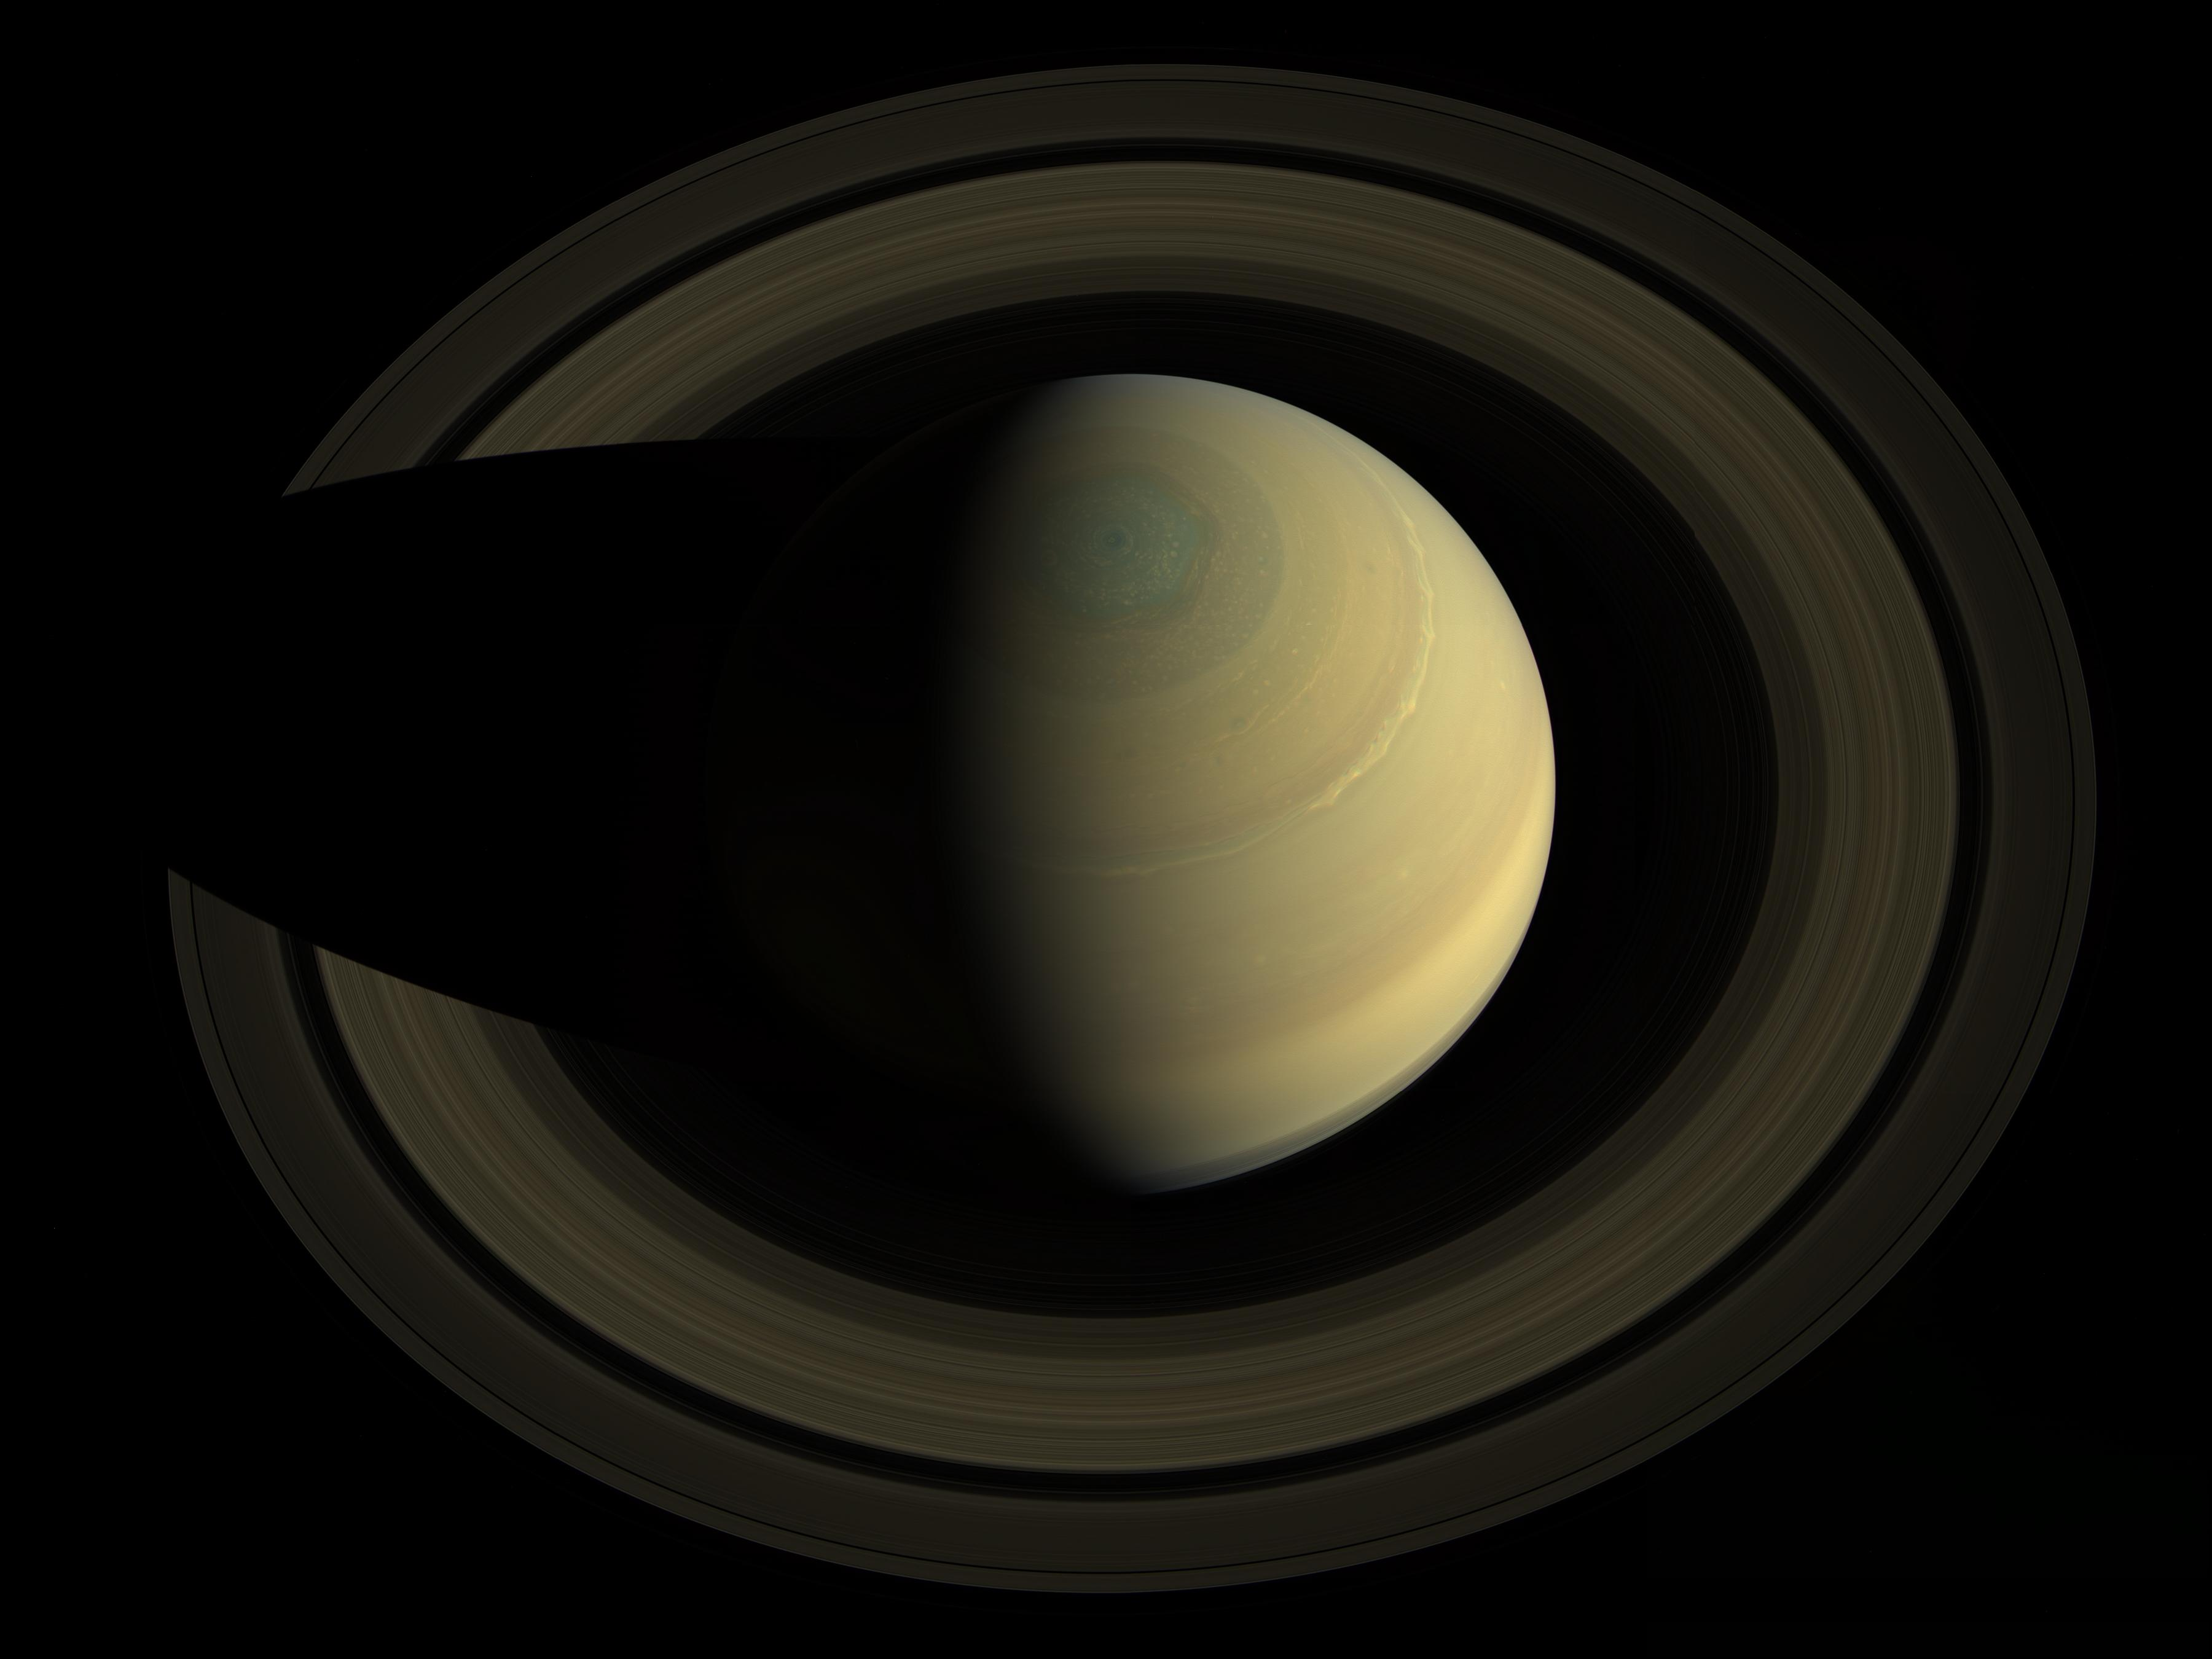 Color image of Saturn and its rings from above.